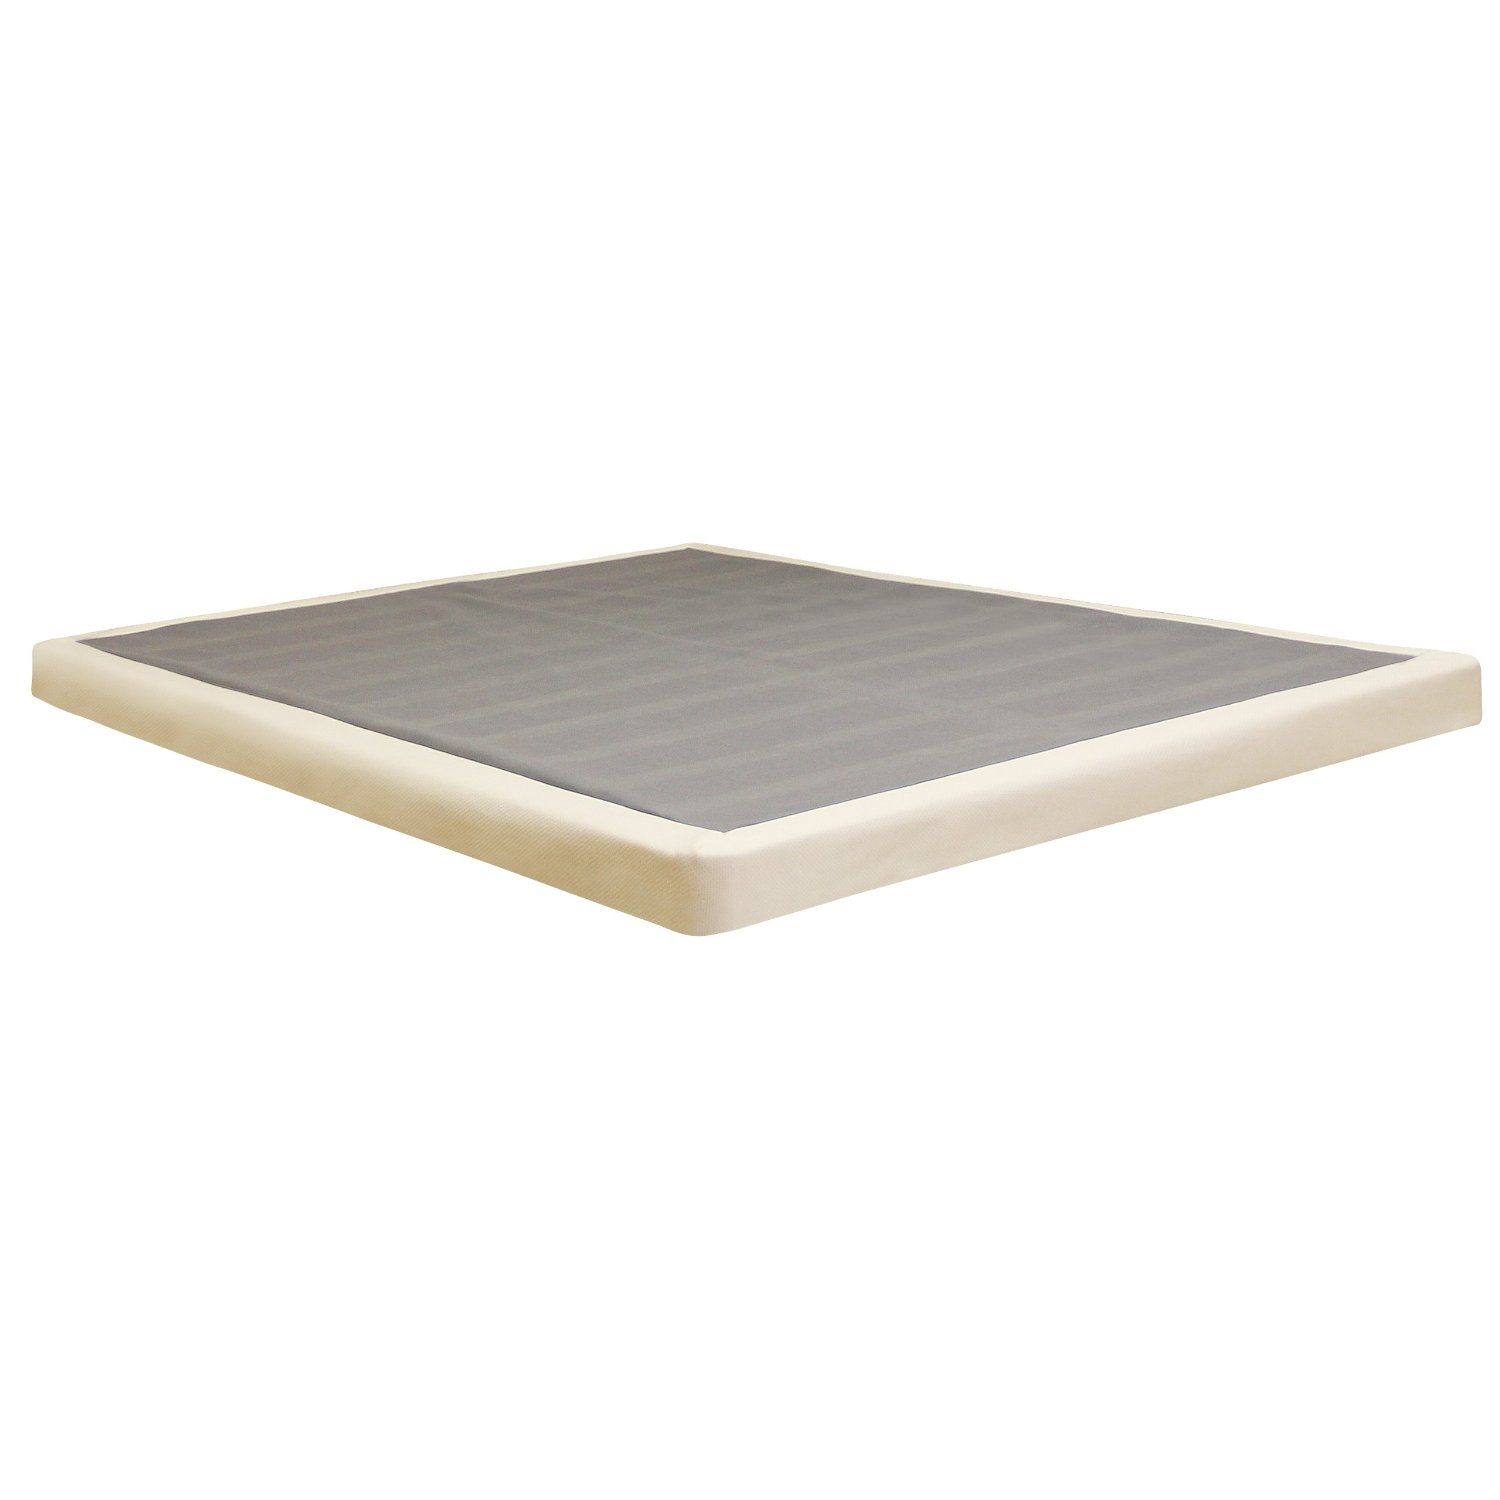 Classic Brands 4 Inch Instant Foundation Low Profile Foundation or Box Spring Replacement, King